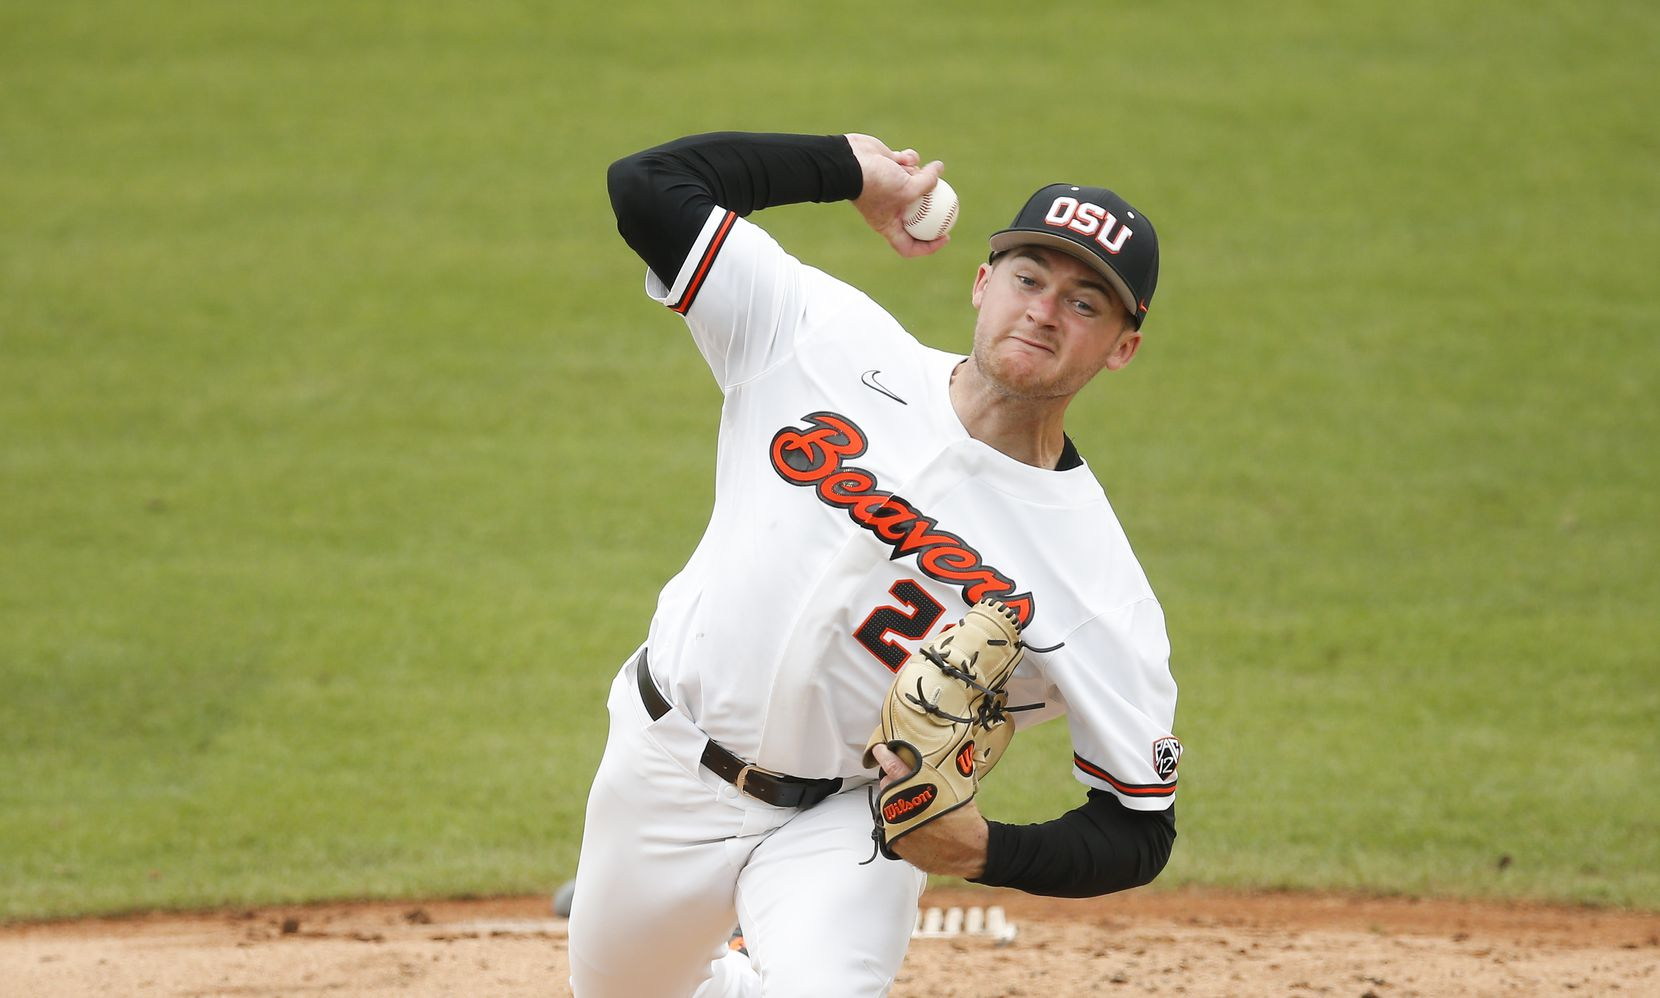 Oregon St. starting pitcher Kevin Abel (23) throws in the third inning during the NCAA Fort Worth Regional baseball tournament against DBU at TCU's Lupton Stadium in Fort Worth, Friday, June 4, 2021. Dallas Baptist won 6-5. (Brandon Wade/Special Contributor)